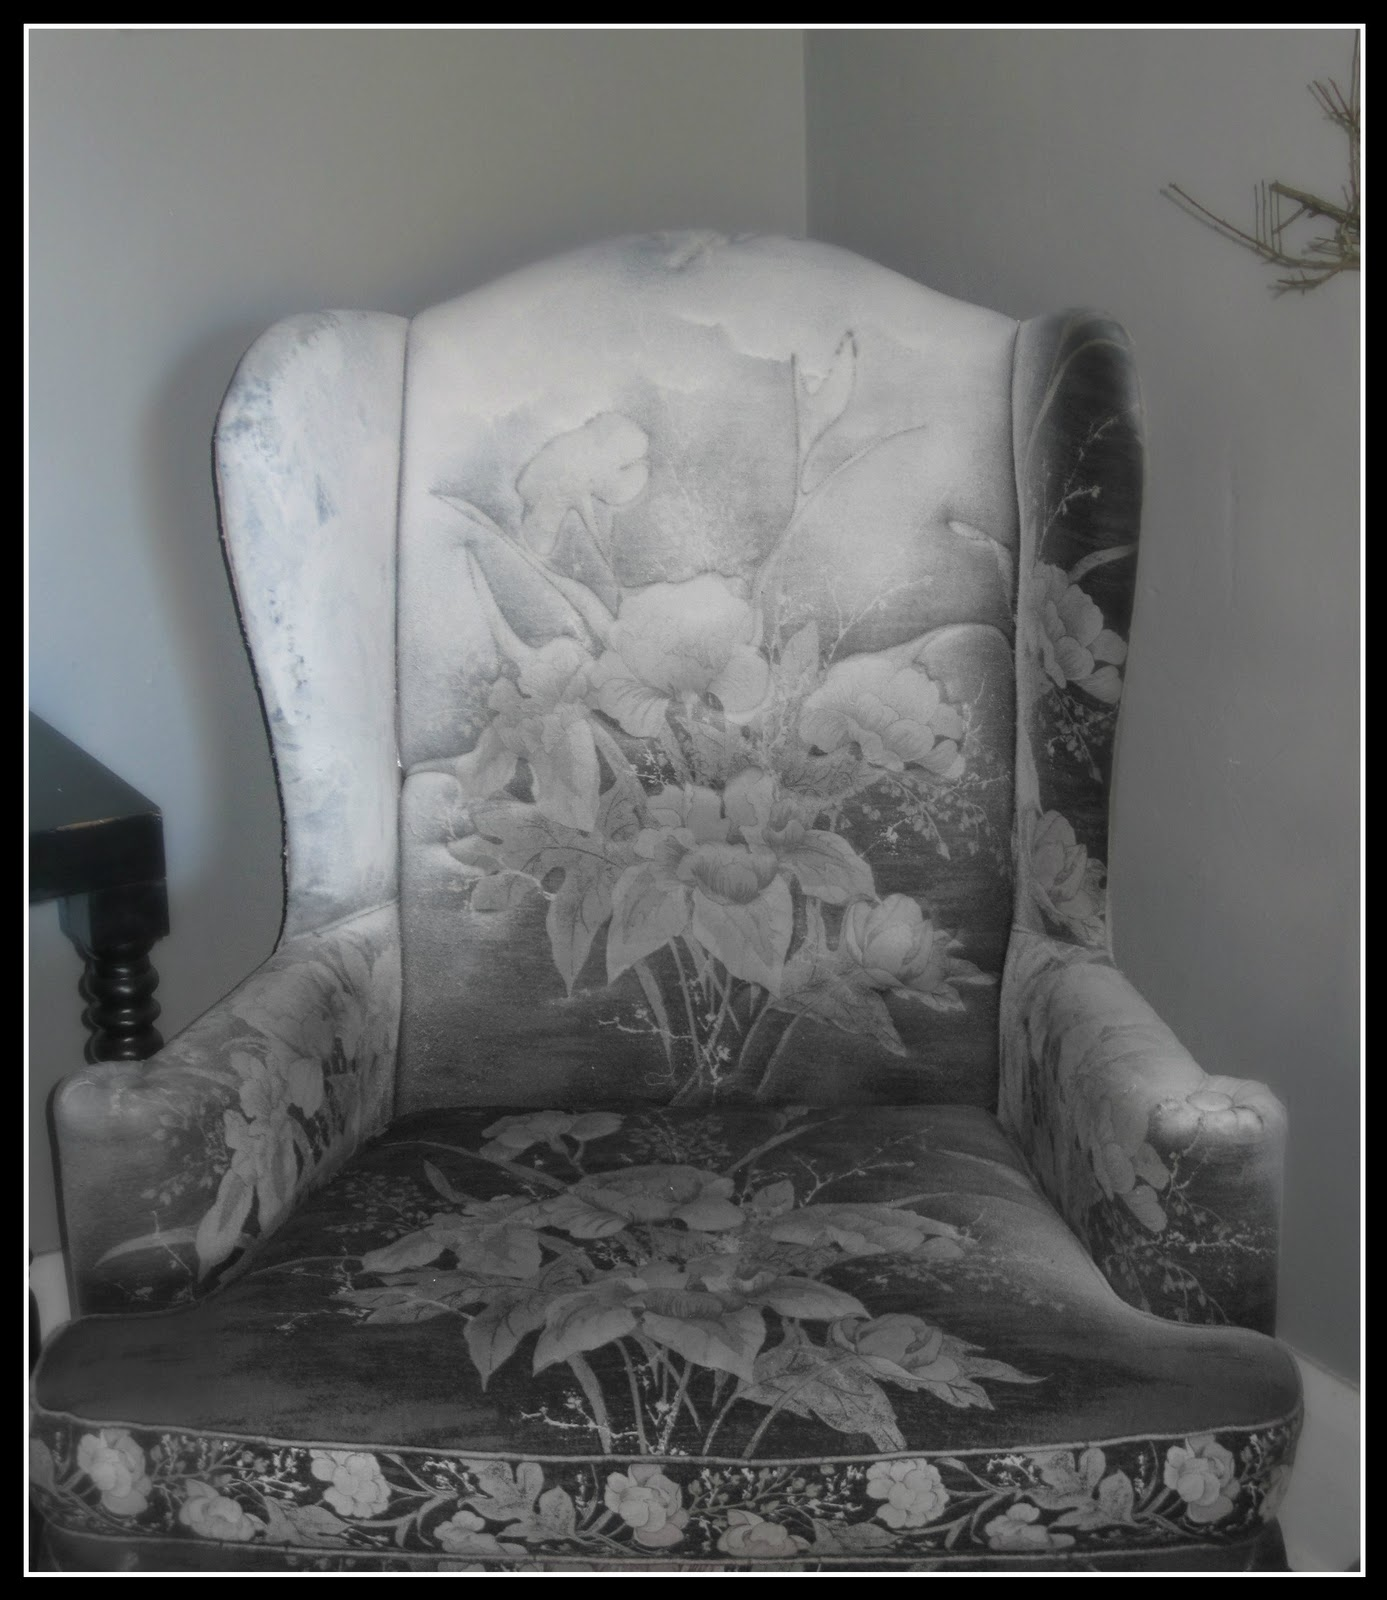 rust oleum fabric vinyl spray paint review with photos. Black Bedroom Furniture Sets. Home Design Ideas